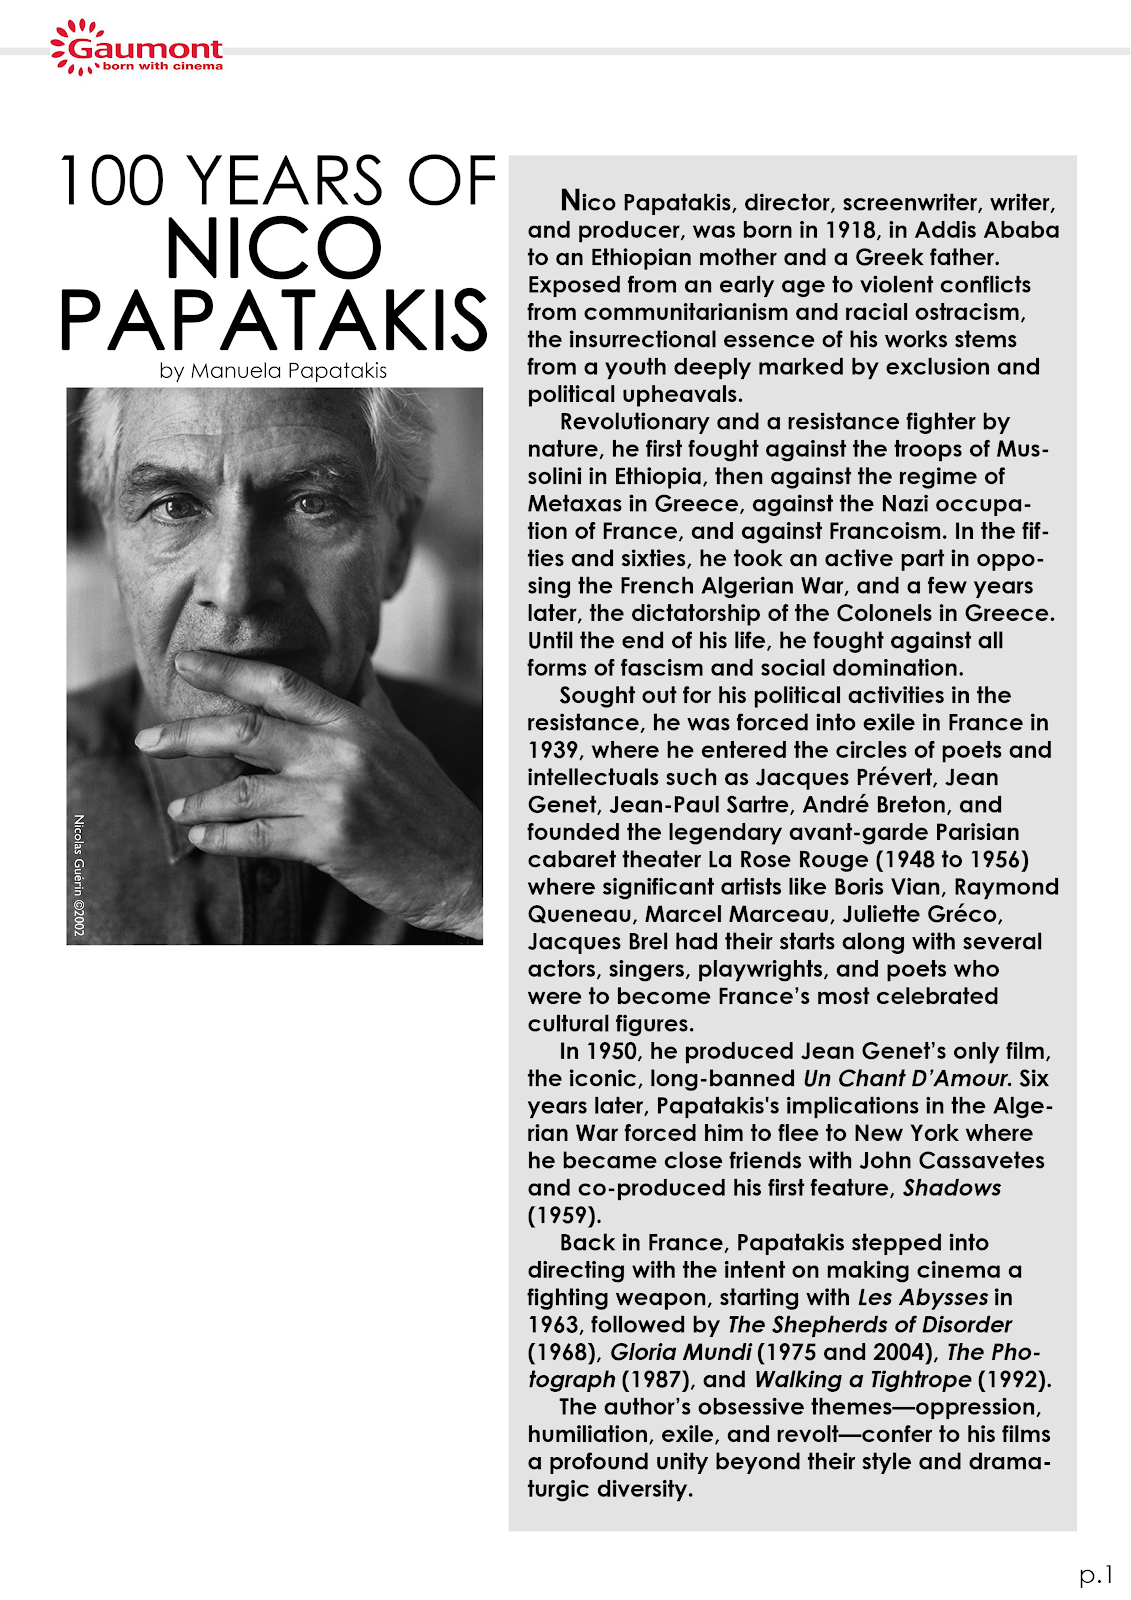 100 YEARS OF NICO PAPATAKIS + BIOGRAPHY & FILMS SYNOPSIS (ENGLISH)